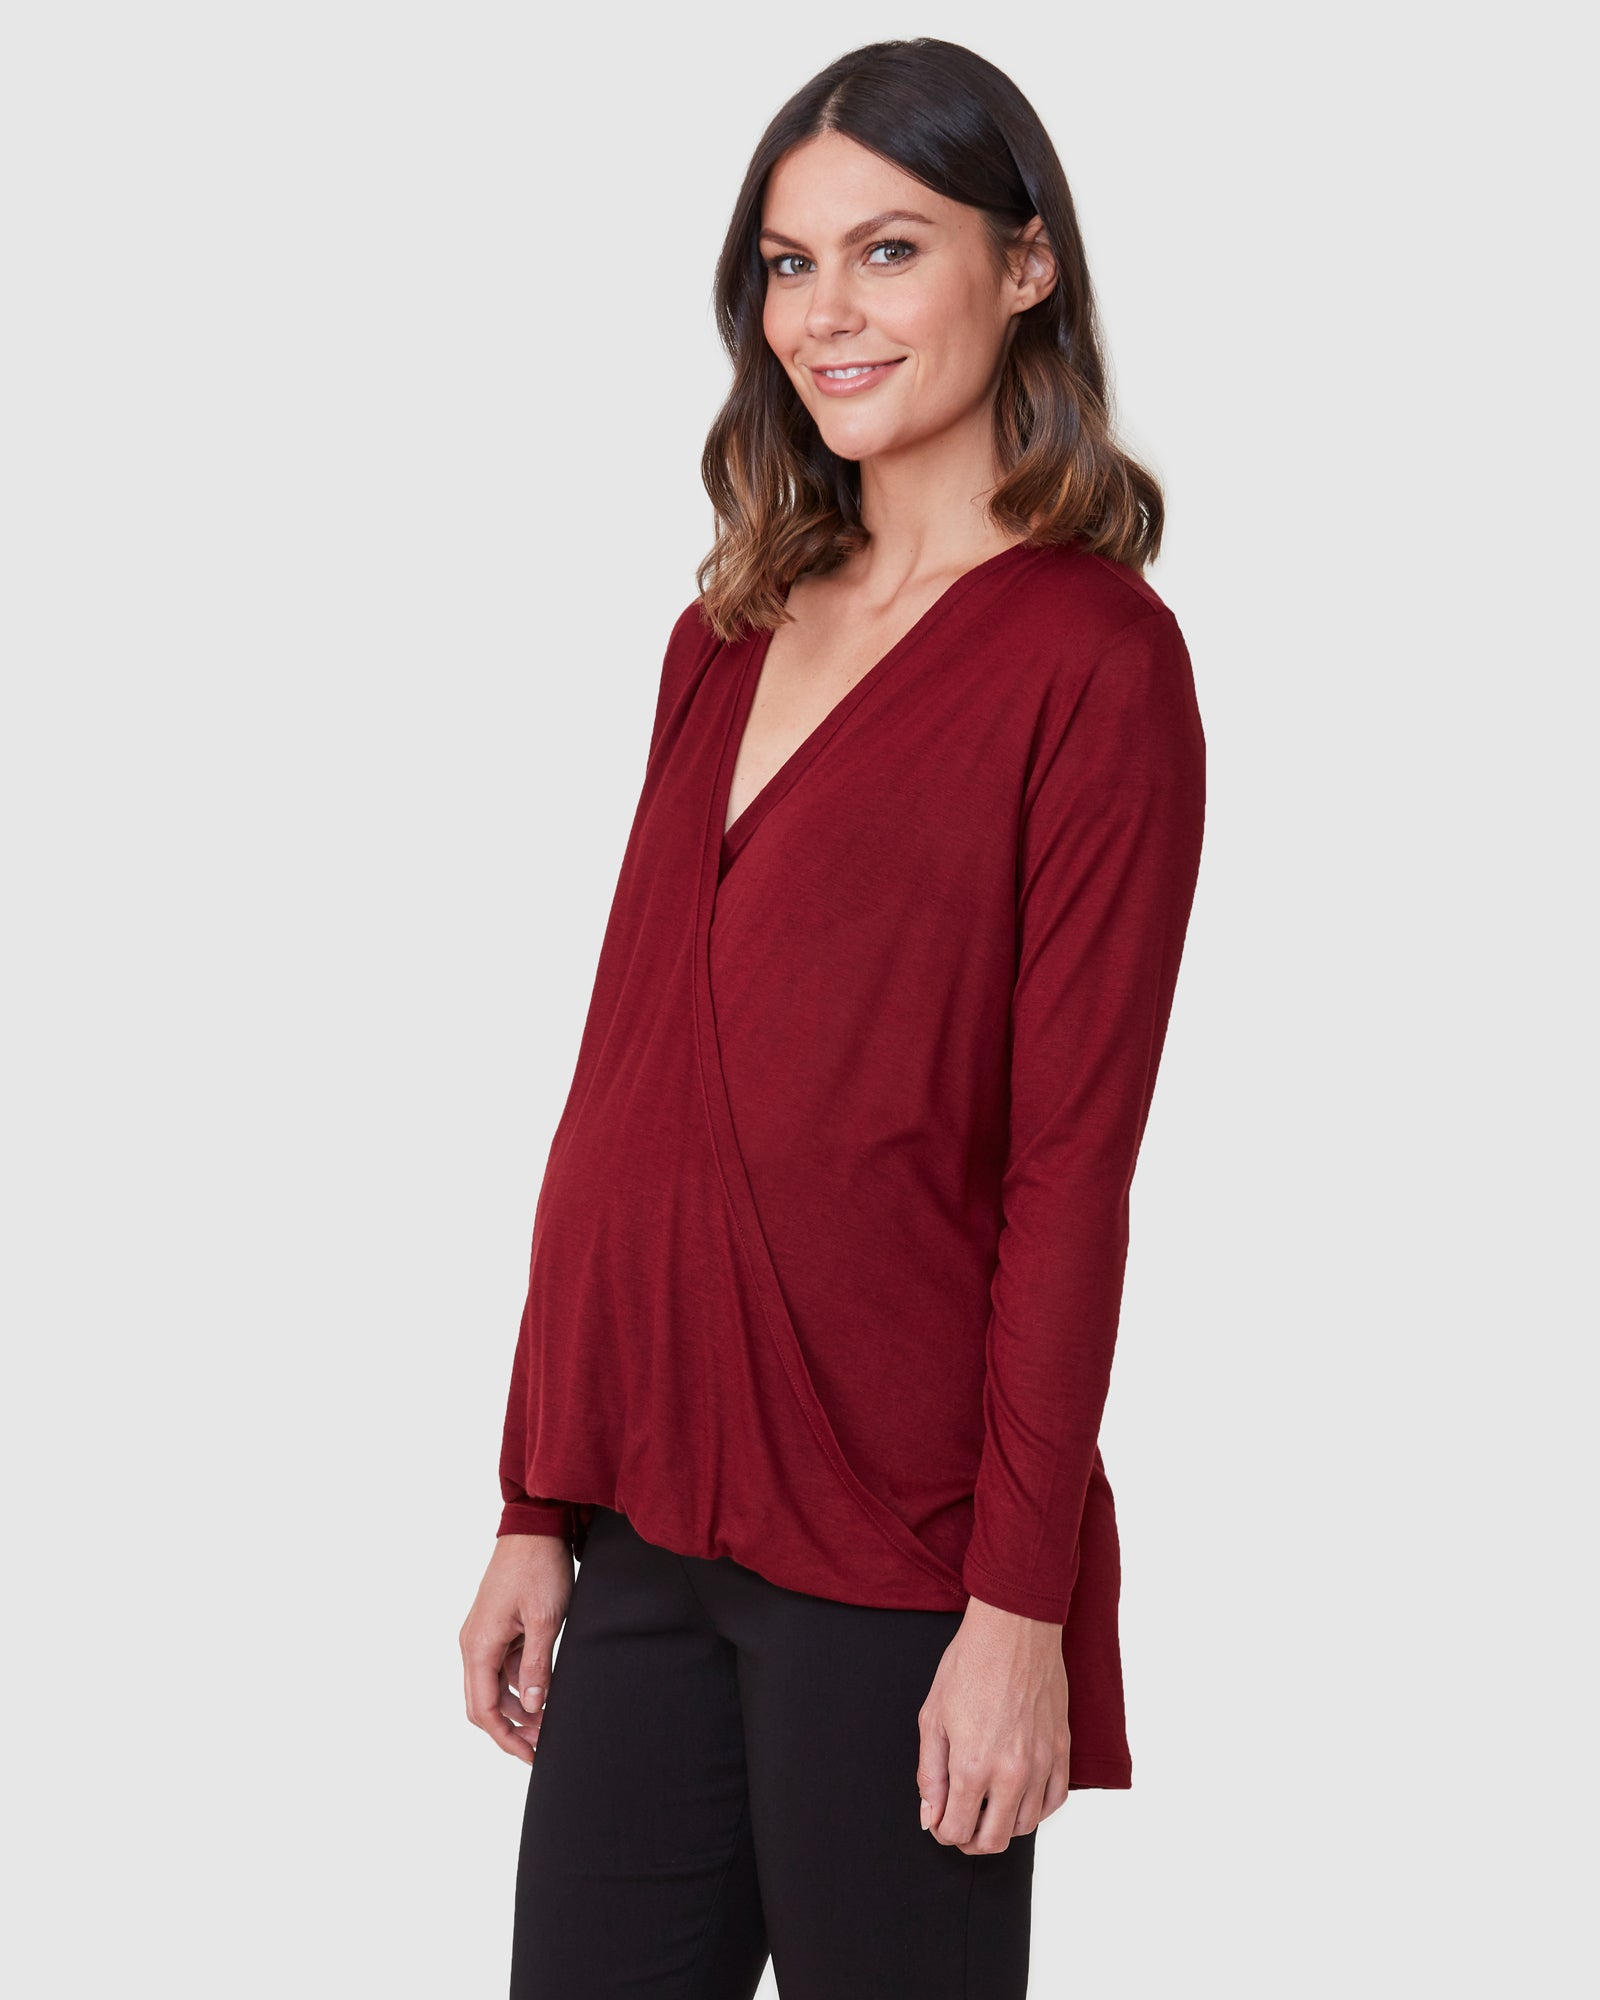 Freya Nursing Knit